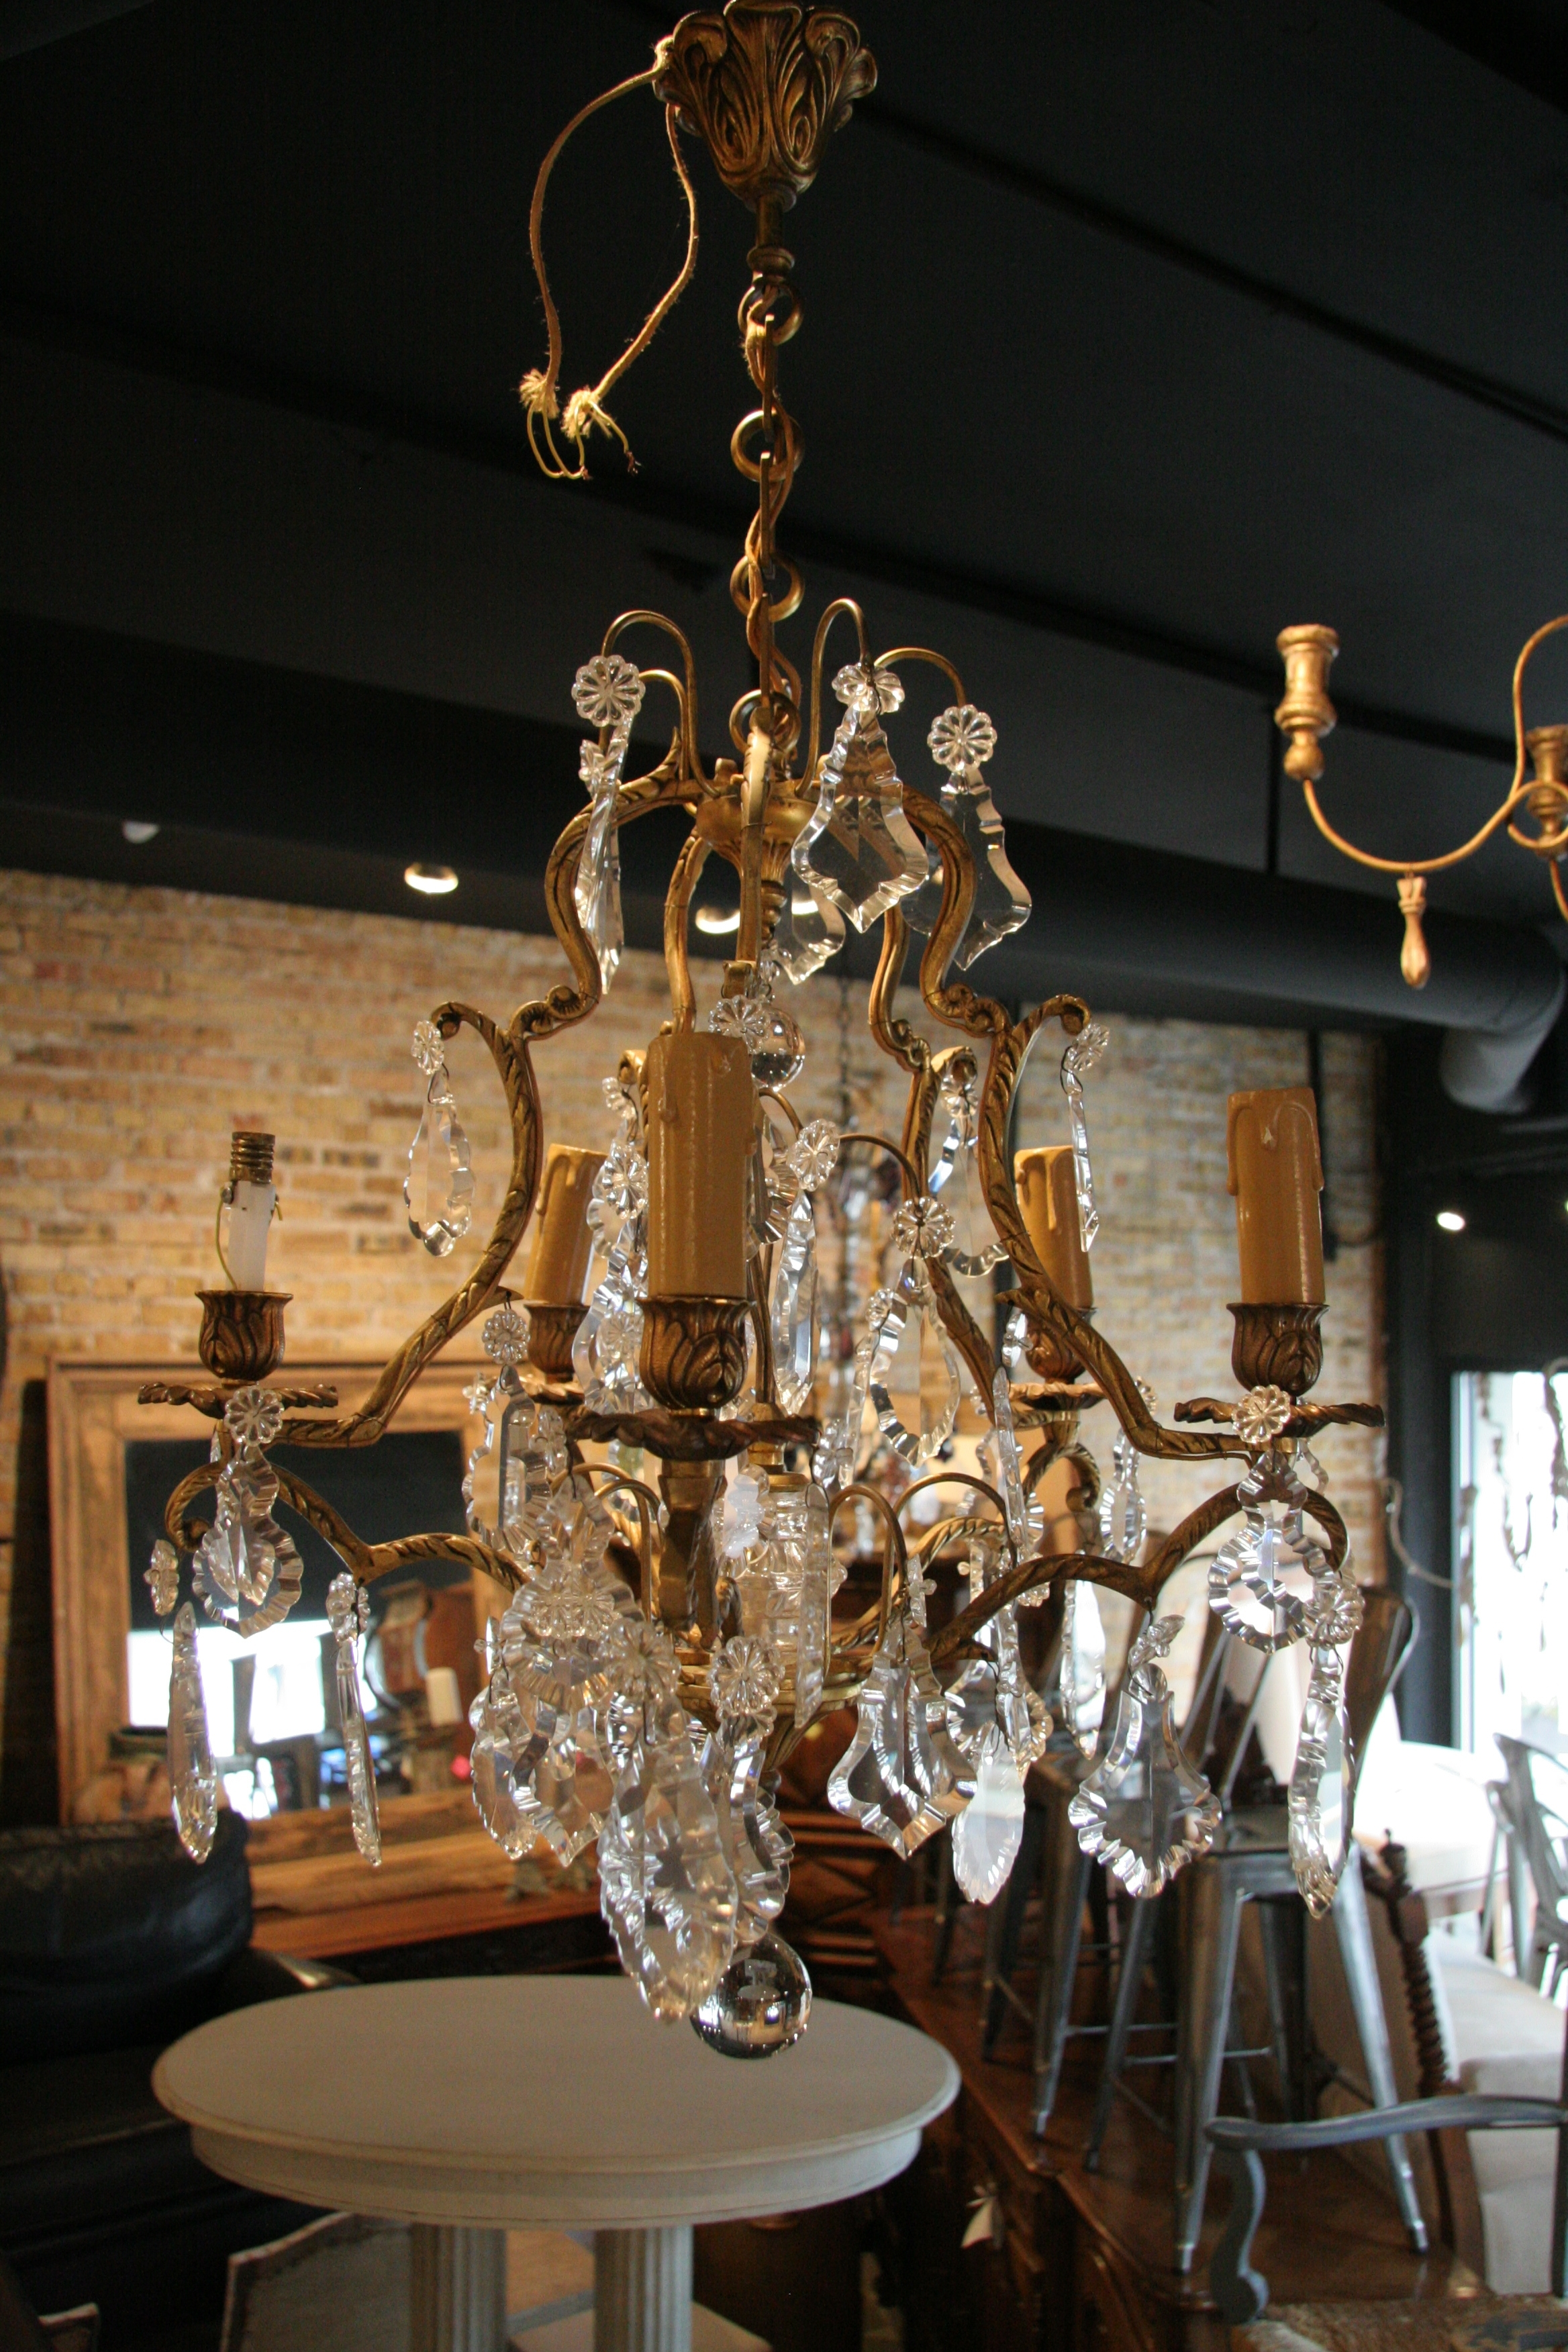 12 Ideas Of French Antique Chandeliers With Regard To Old Brass Chandeliers (Photo 12 of 25)